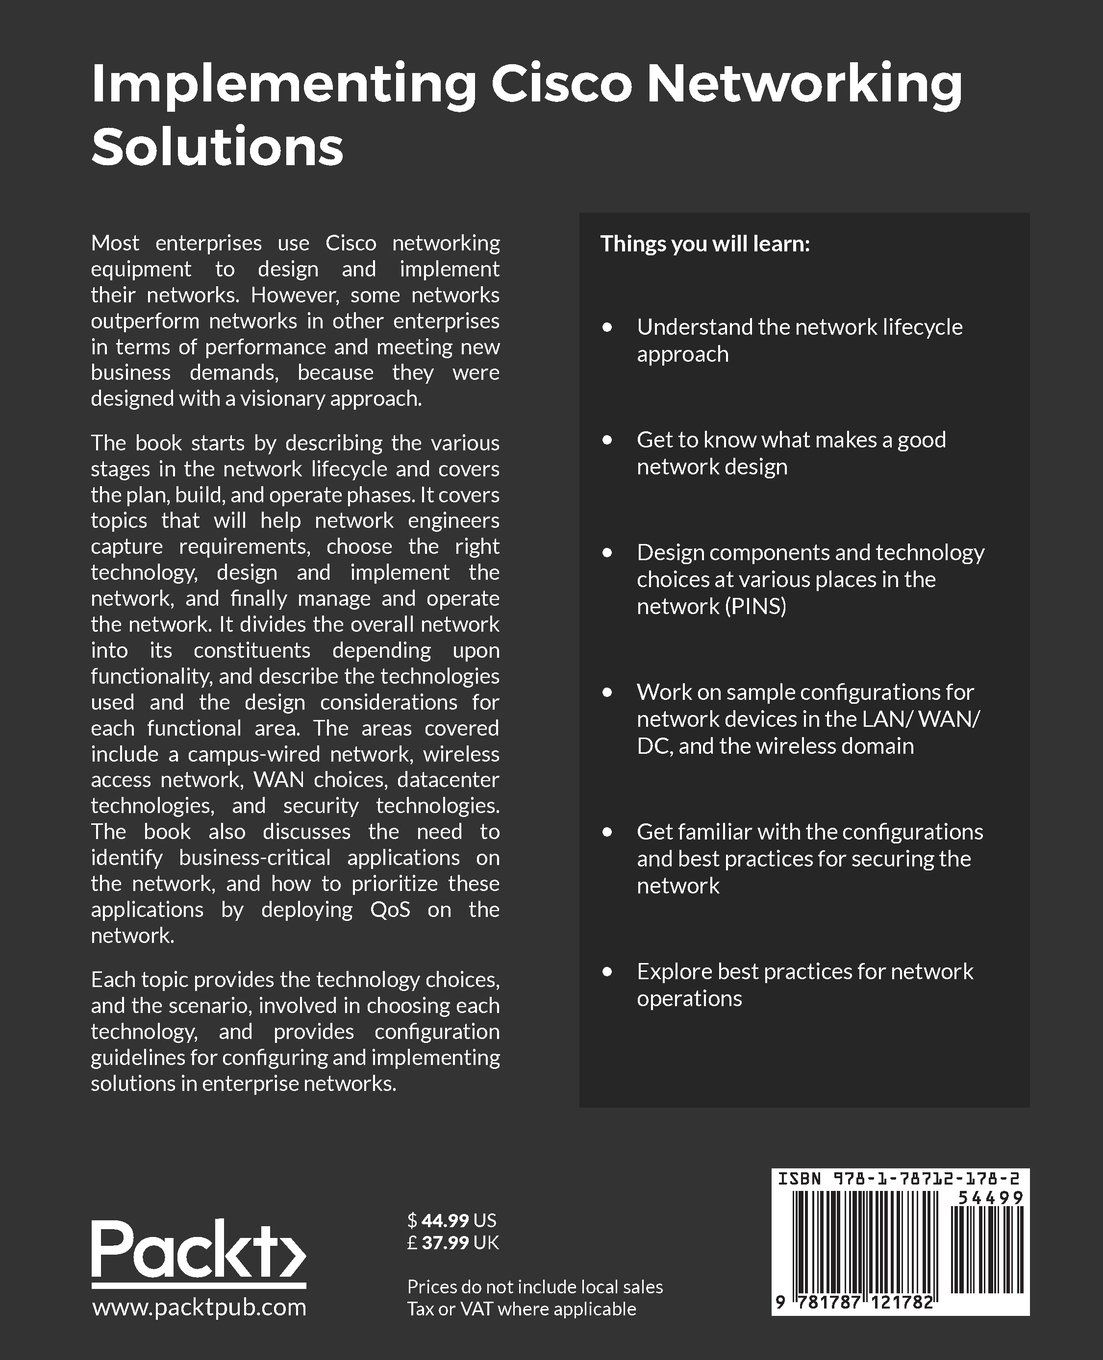 Implementing Cisco Networking Solutions: Configure